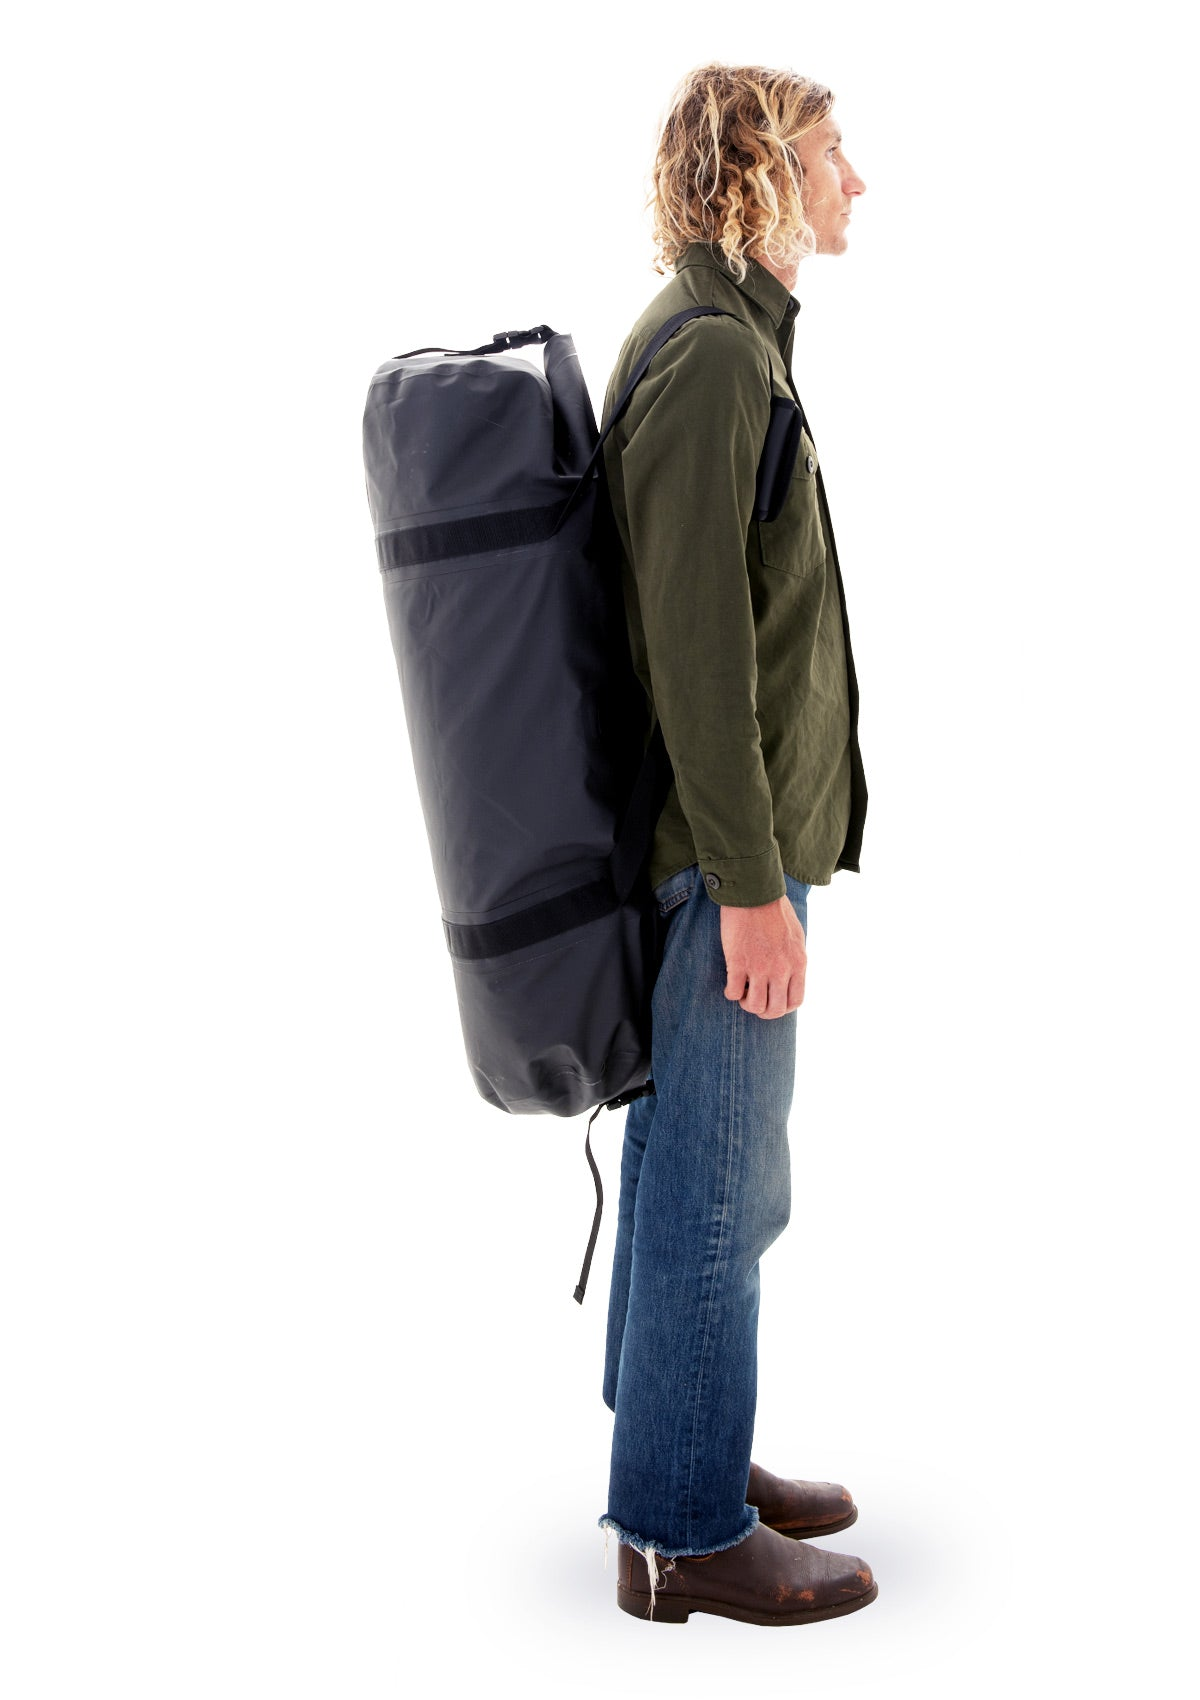 80 Litre Dry Duffle